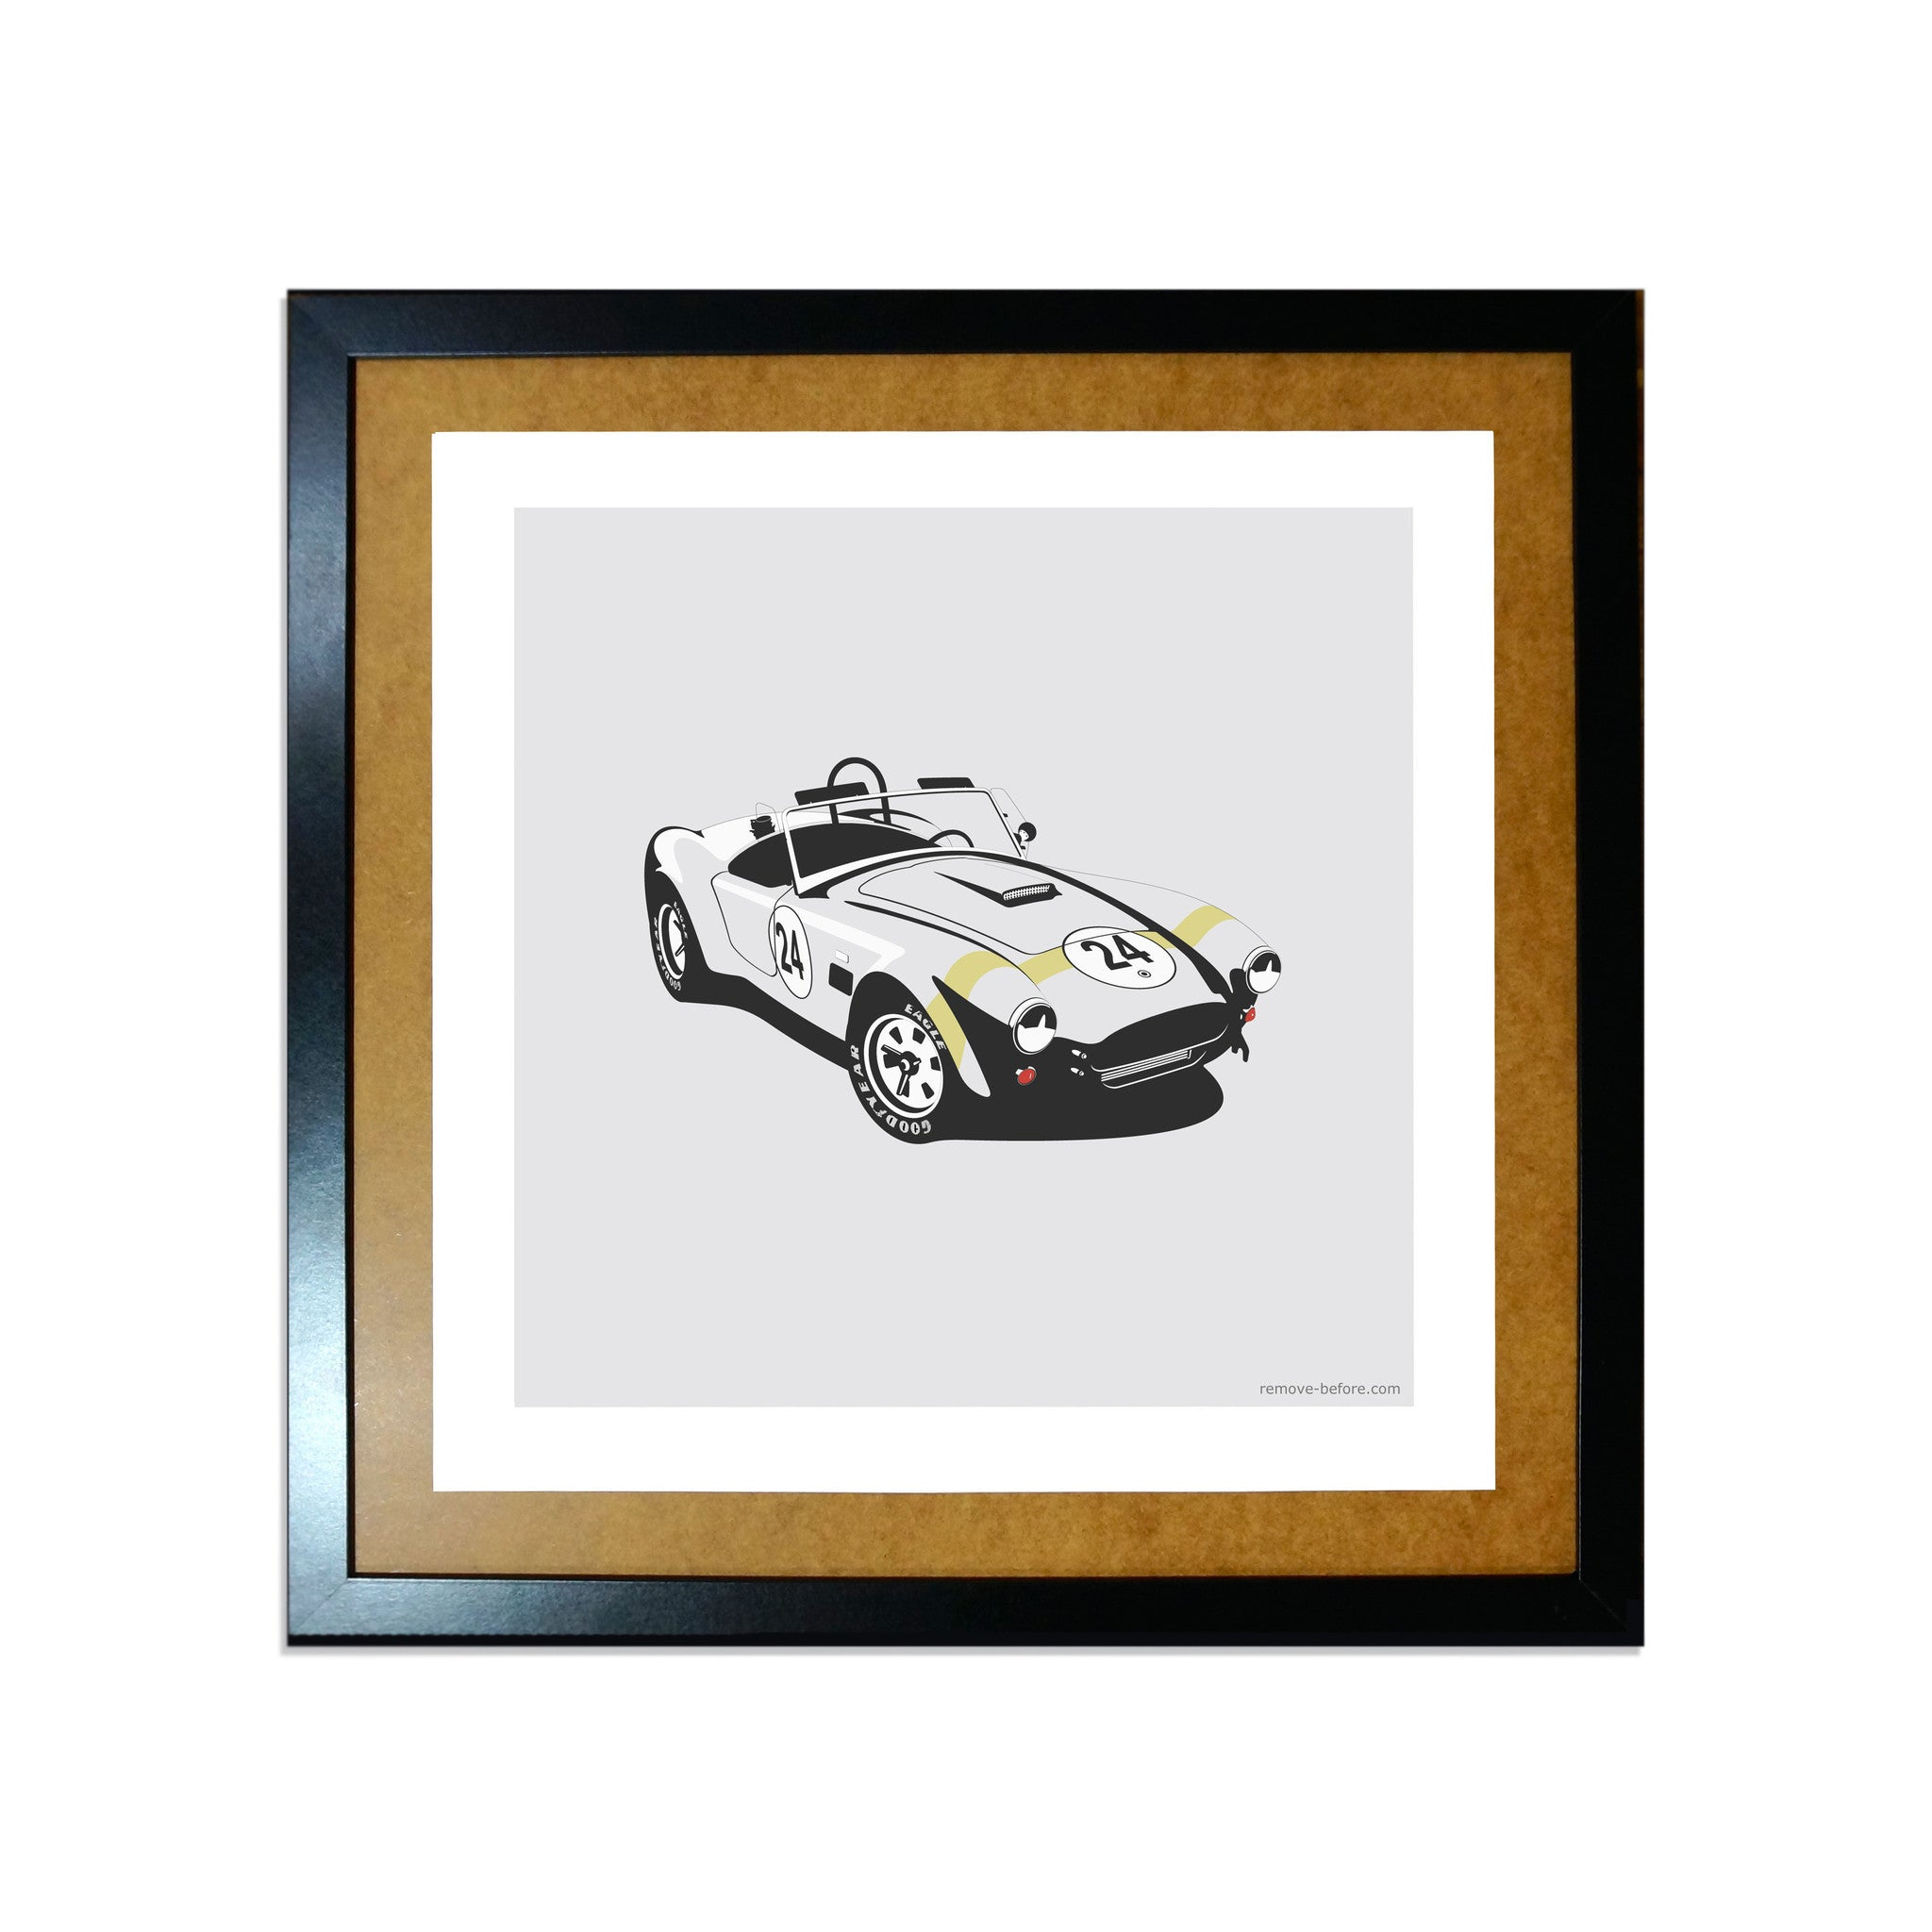 Remove-Before Limited Edition Classic Car Print - Shelby Cobra Car Artwork